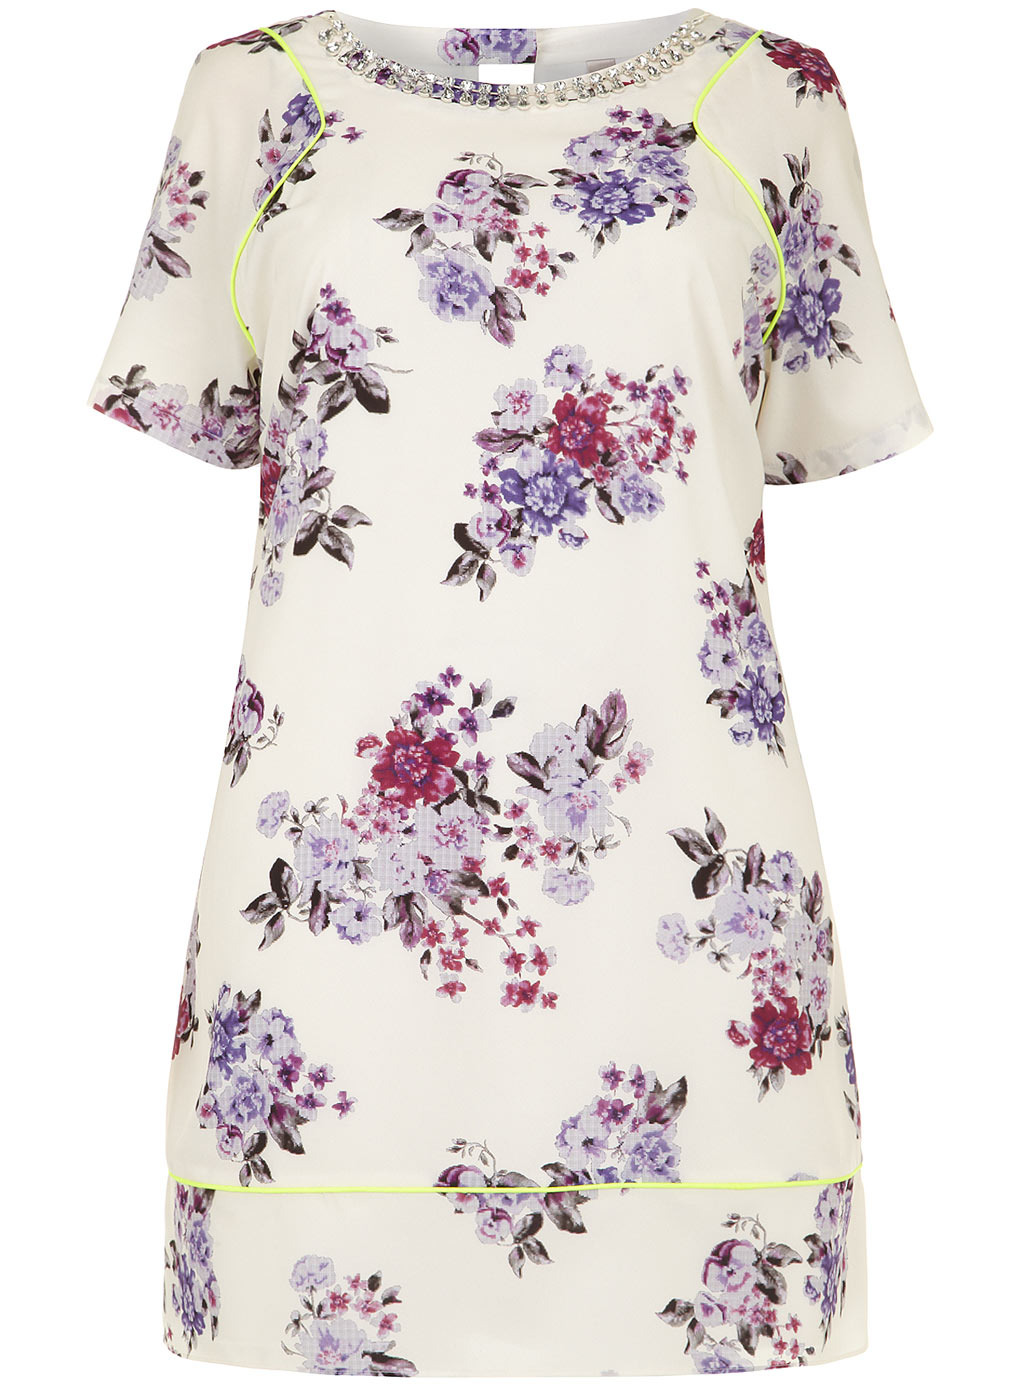 Collection Ivory Printed Shift Dress - style: shift; length: mid thigh; neckline: round neck; fit: tailored/fitted; predominant colour: white; secondary colour: purple; occasions: casual, evening, occasion; fibres: polyester/polyamide - 100%; sleeve length: short sleeve; sleeve style: standard; texture group: crepes; pattern type: fabric; pattern size: standard; pattern: florals; embellishment: crystals/glass; season: s/s 2014; wardrobe: highlight; embellishment location: waist